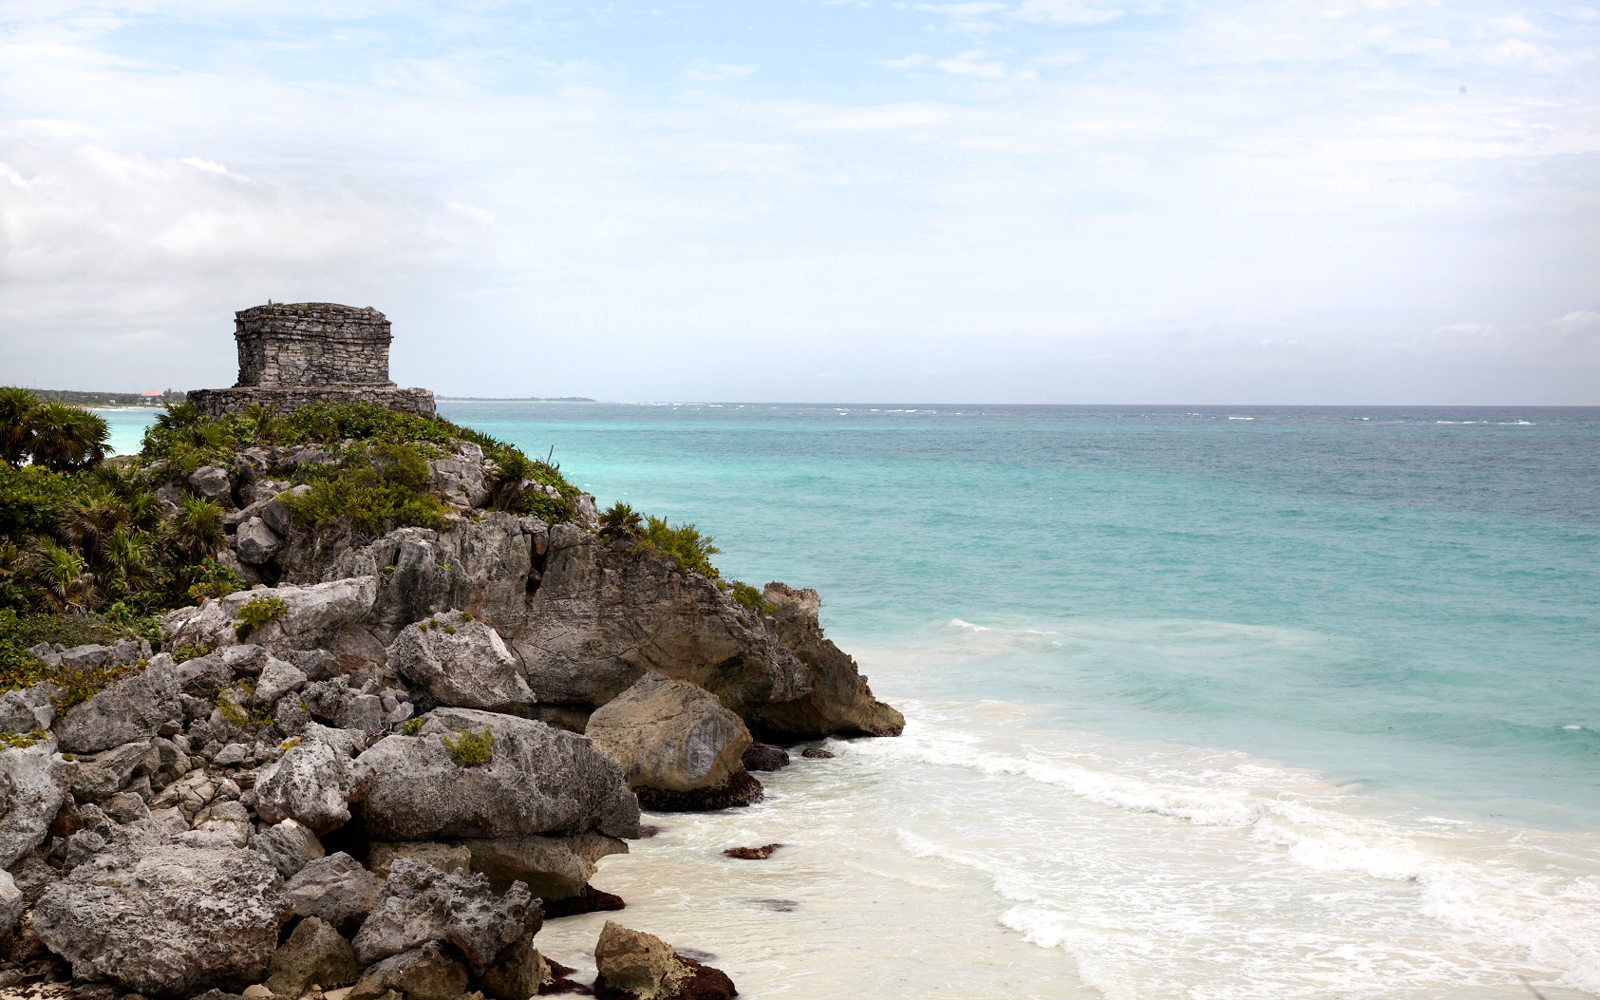 View of the beach by the Tulum ruins